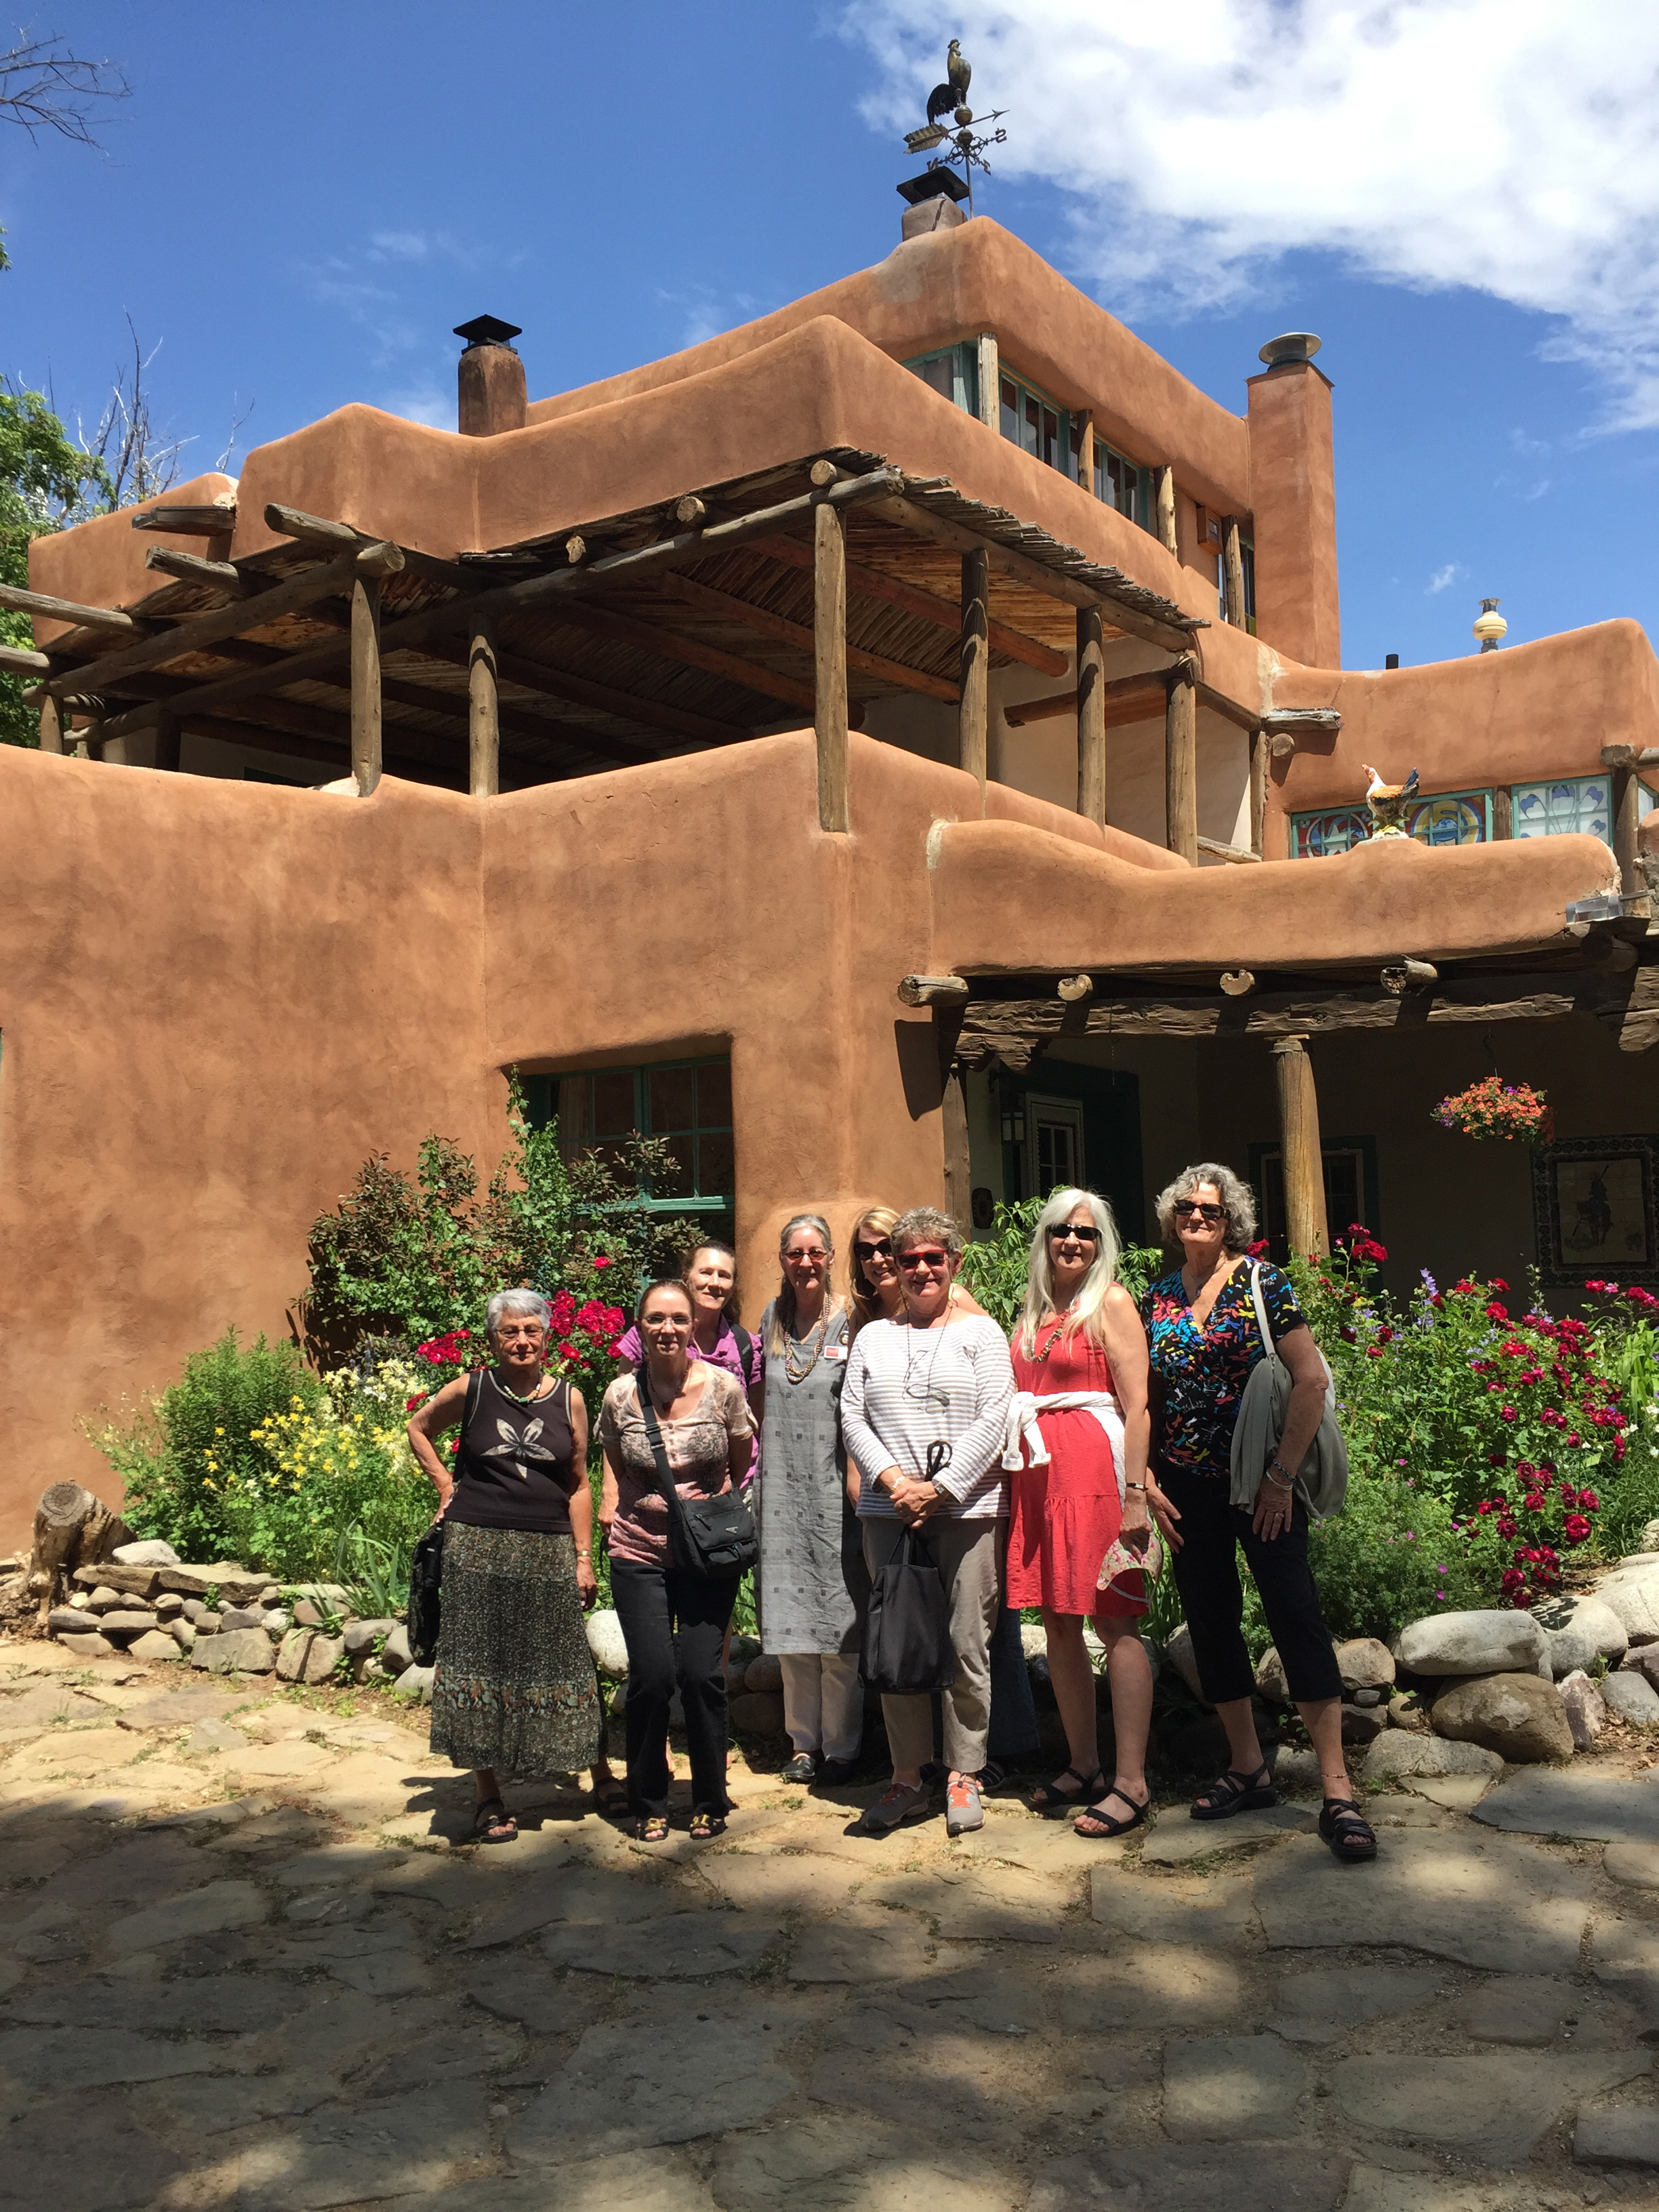 Tours of the Mabel Dodge Luhan House and Harwood Museum